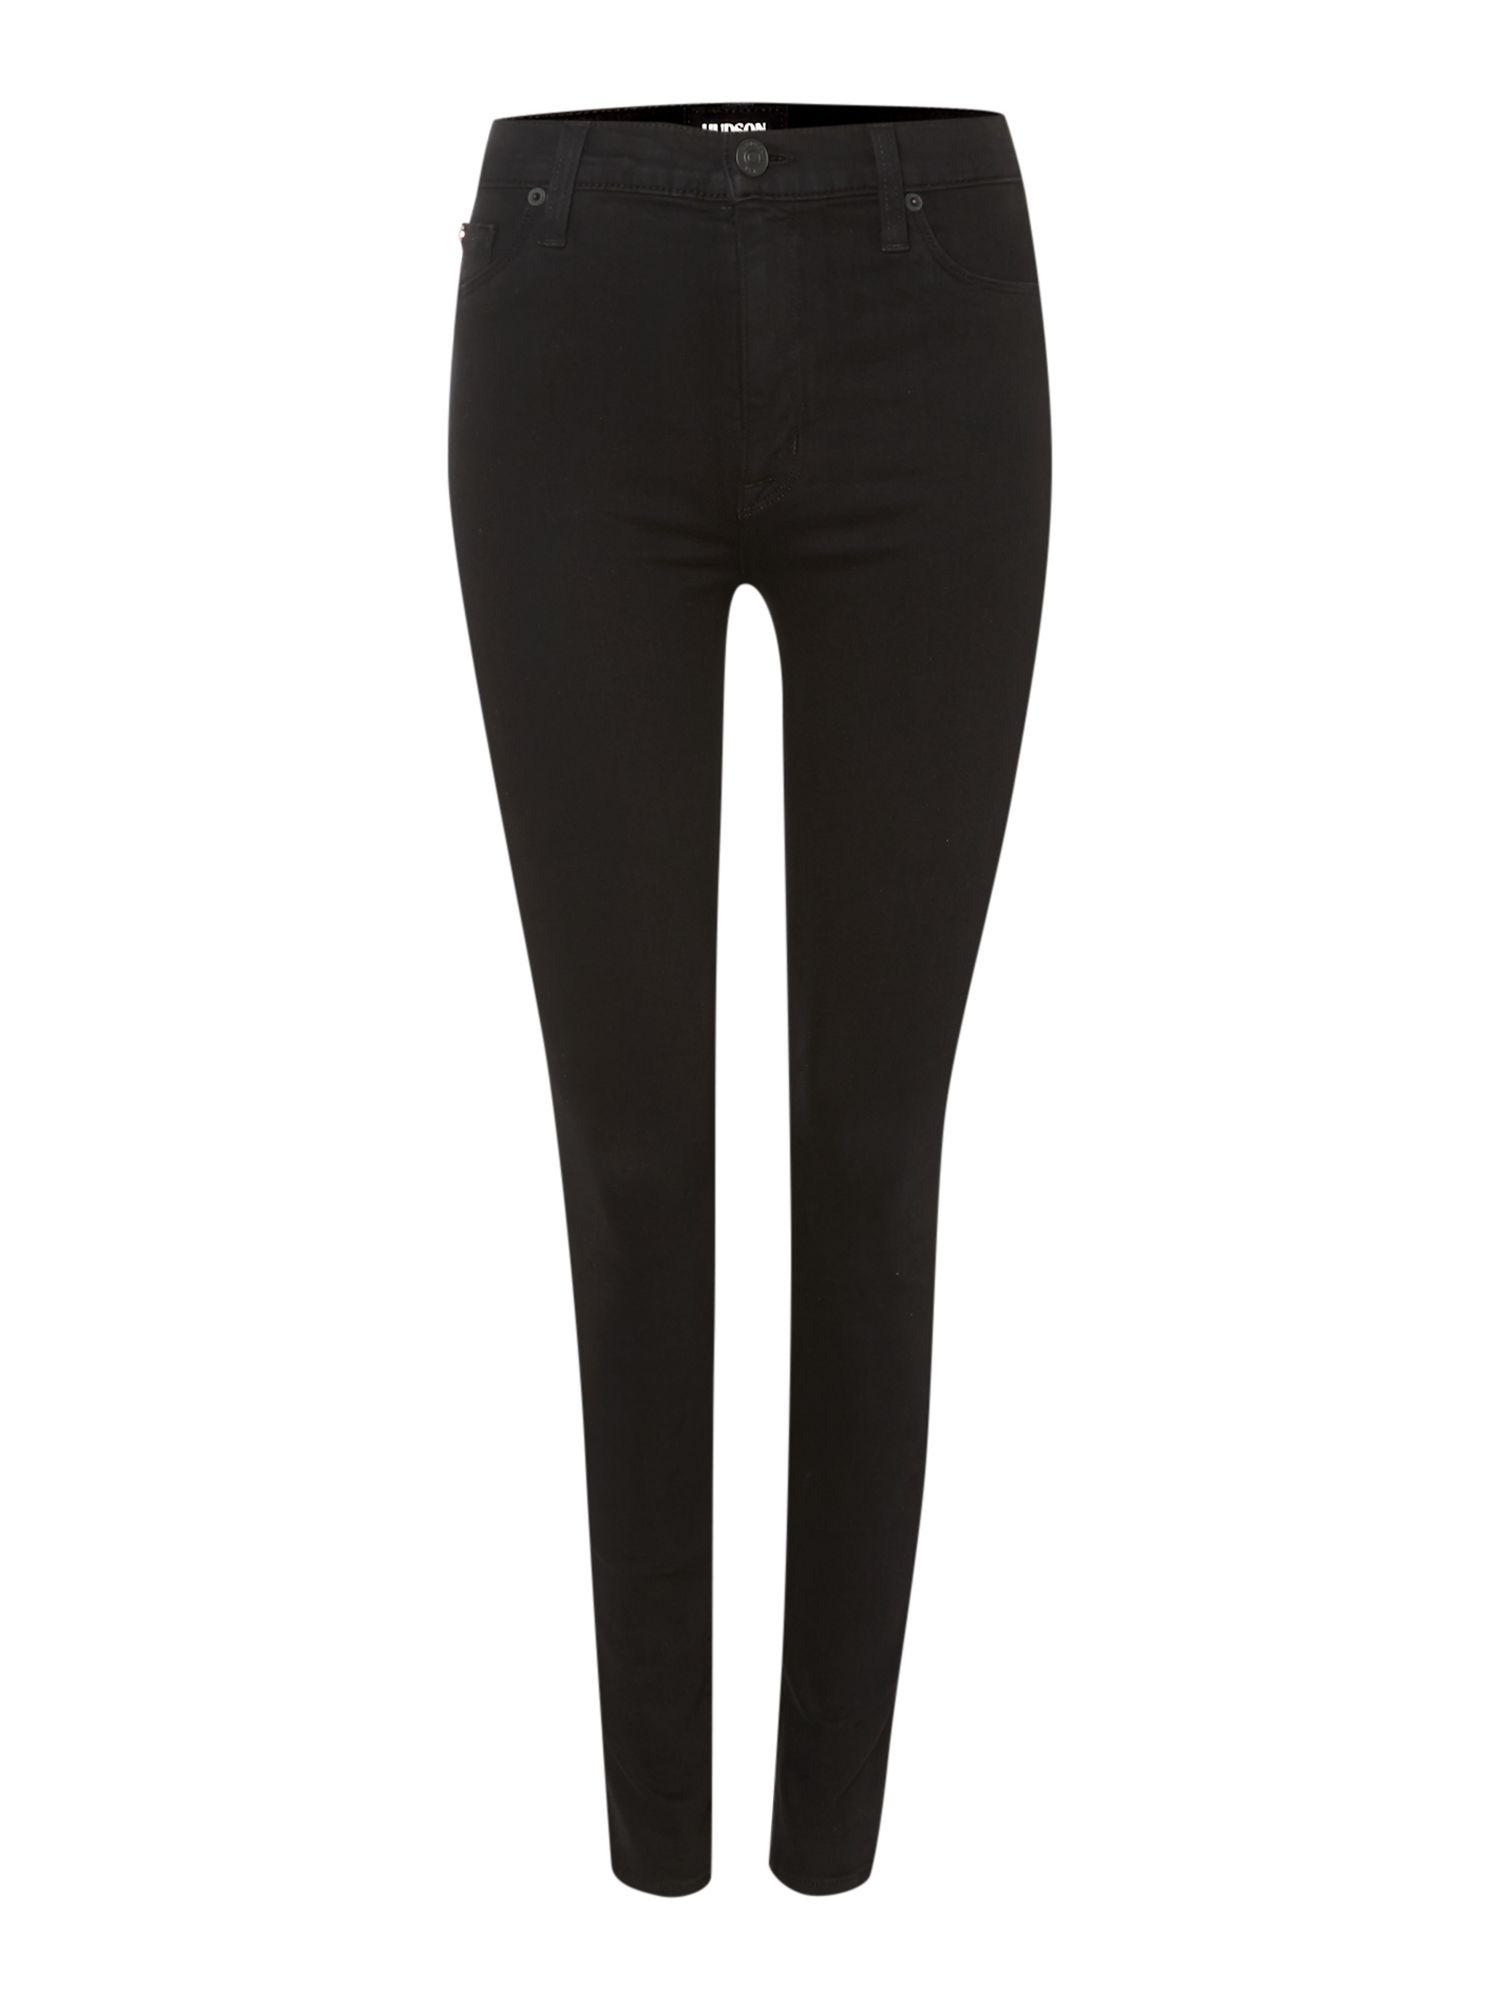 Barbara high rise jeans in black